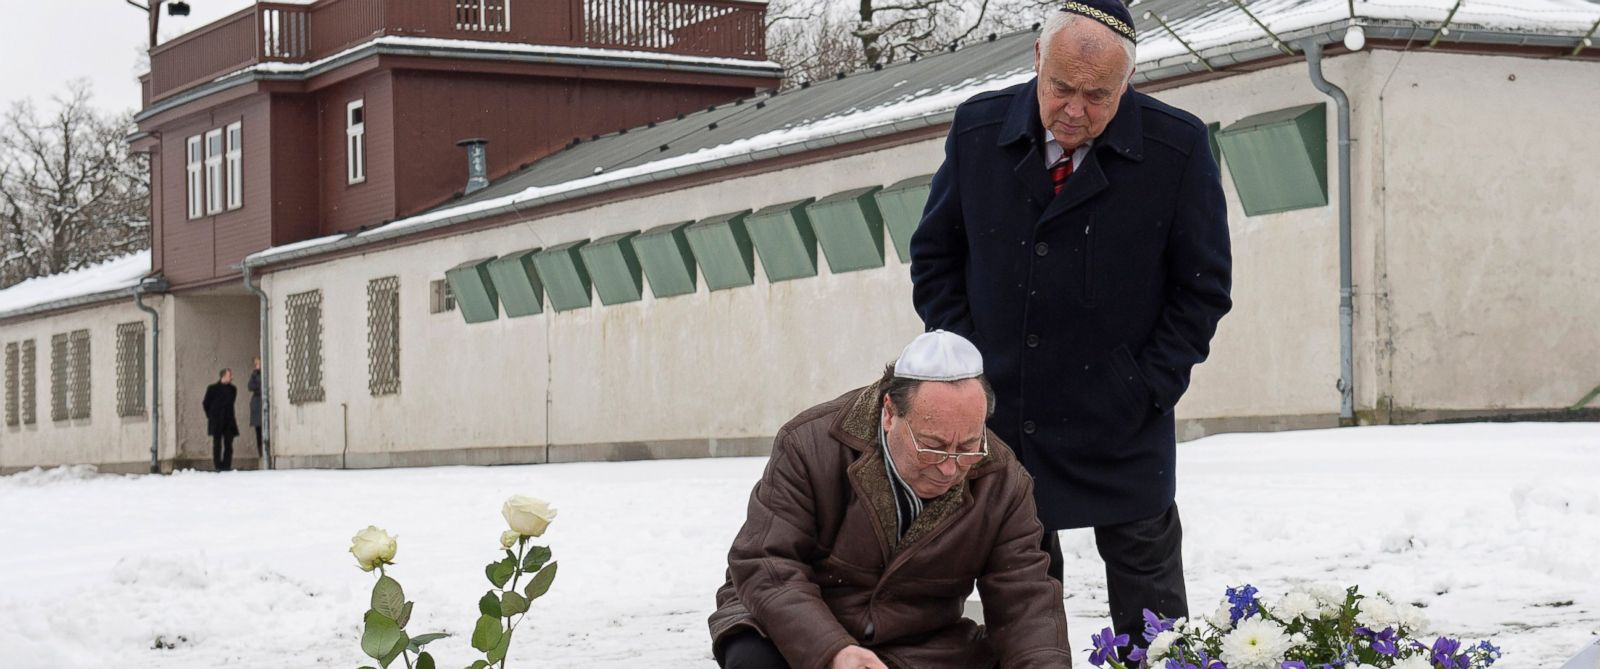 PHOTO: Ilja Rabinovitch, left, and Reinhard Schramm, of the Jewish community in Thuringia, lay down a wreath during the international Holocaust remembrance day at the former Nazi concentration camp Buchenwald near Weimar, Germany, Jan. 27, 2015.